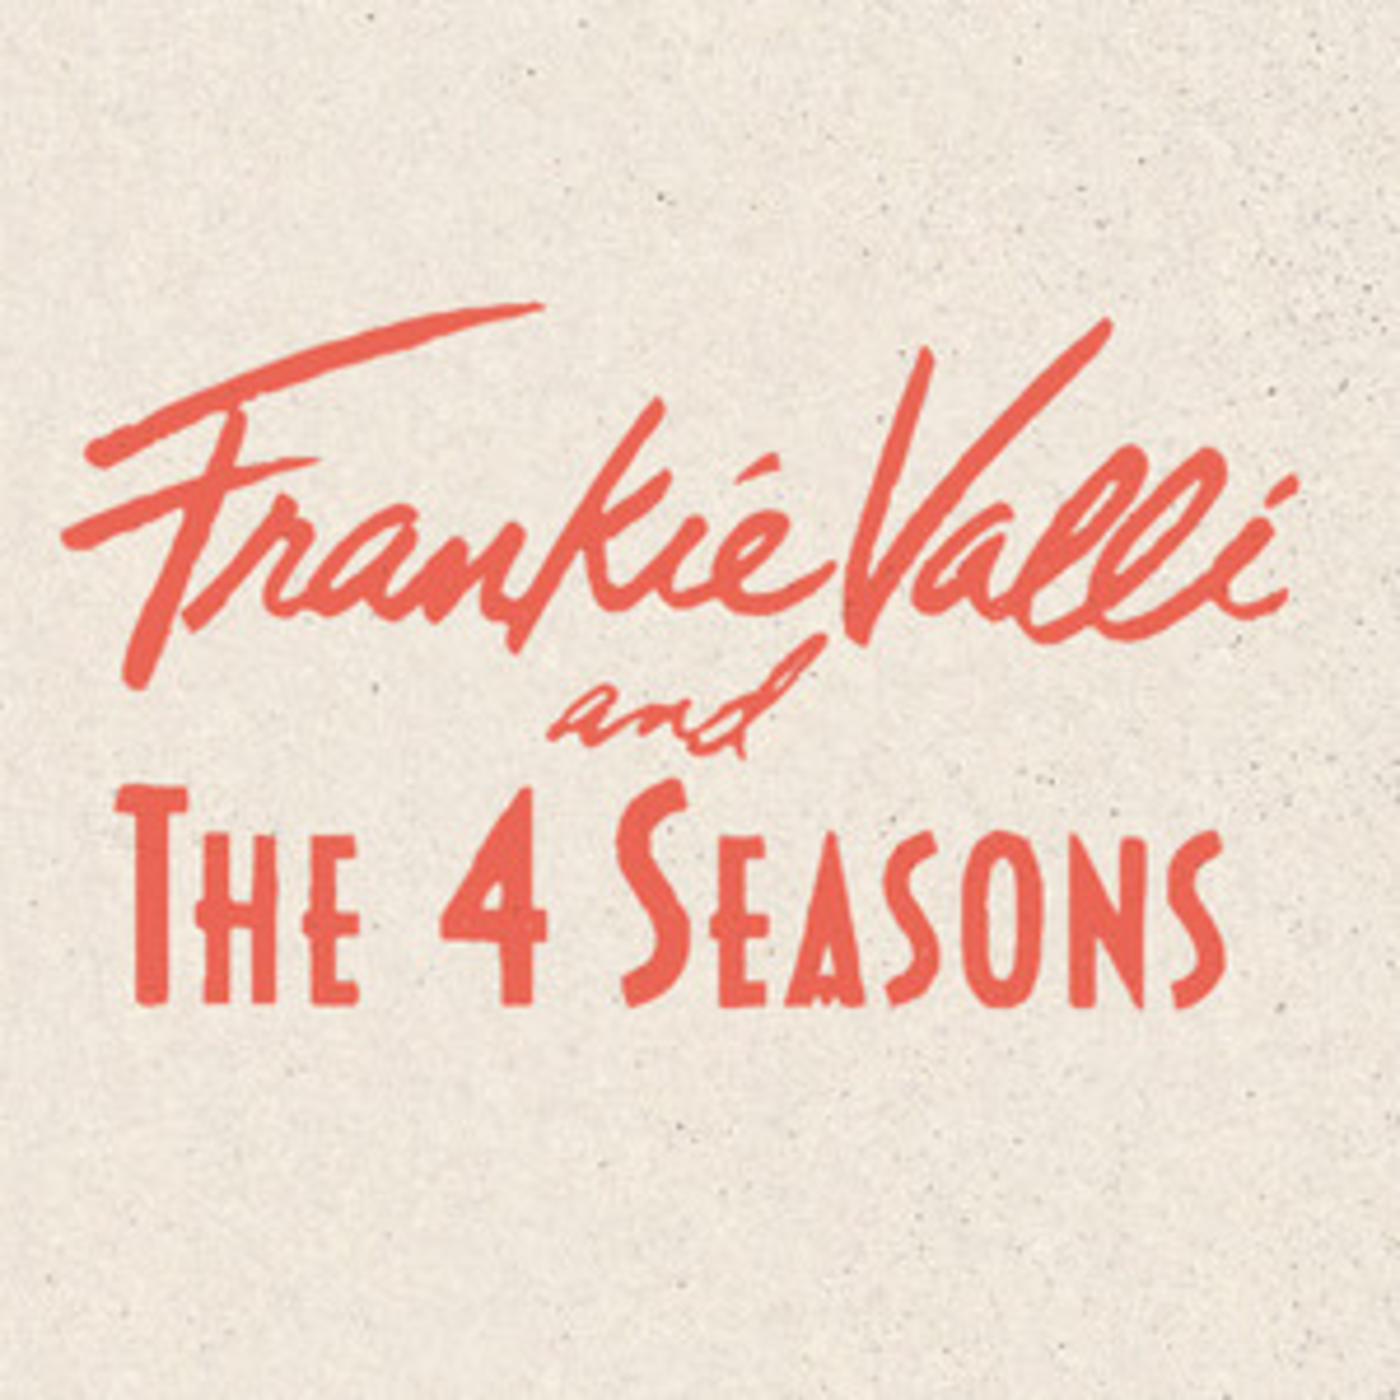 Love Songs - Frankie Valli & The Four Seasons